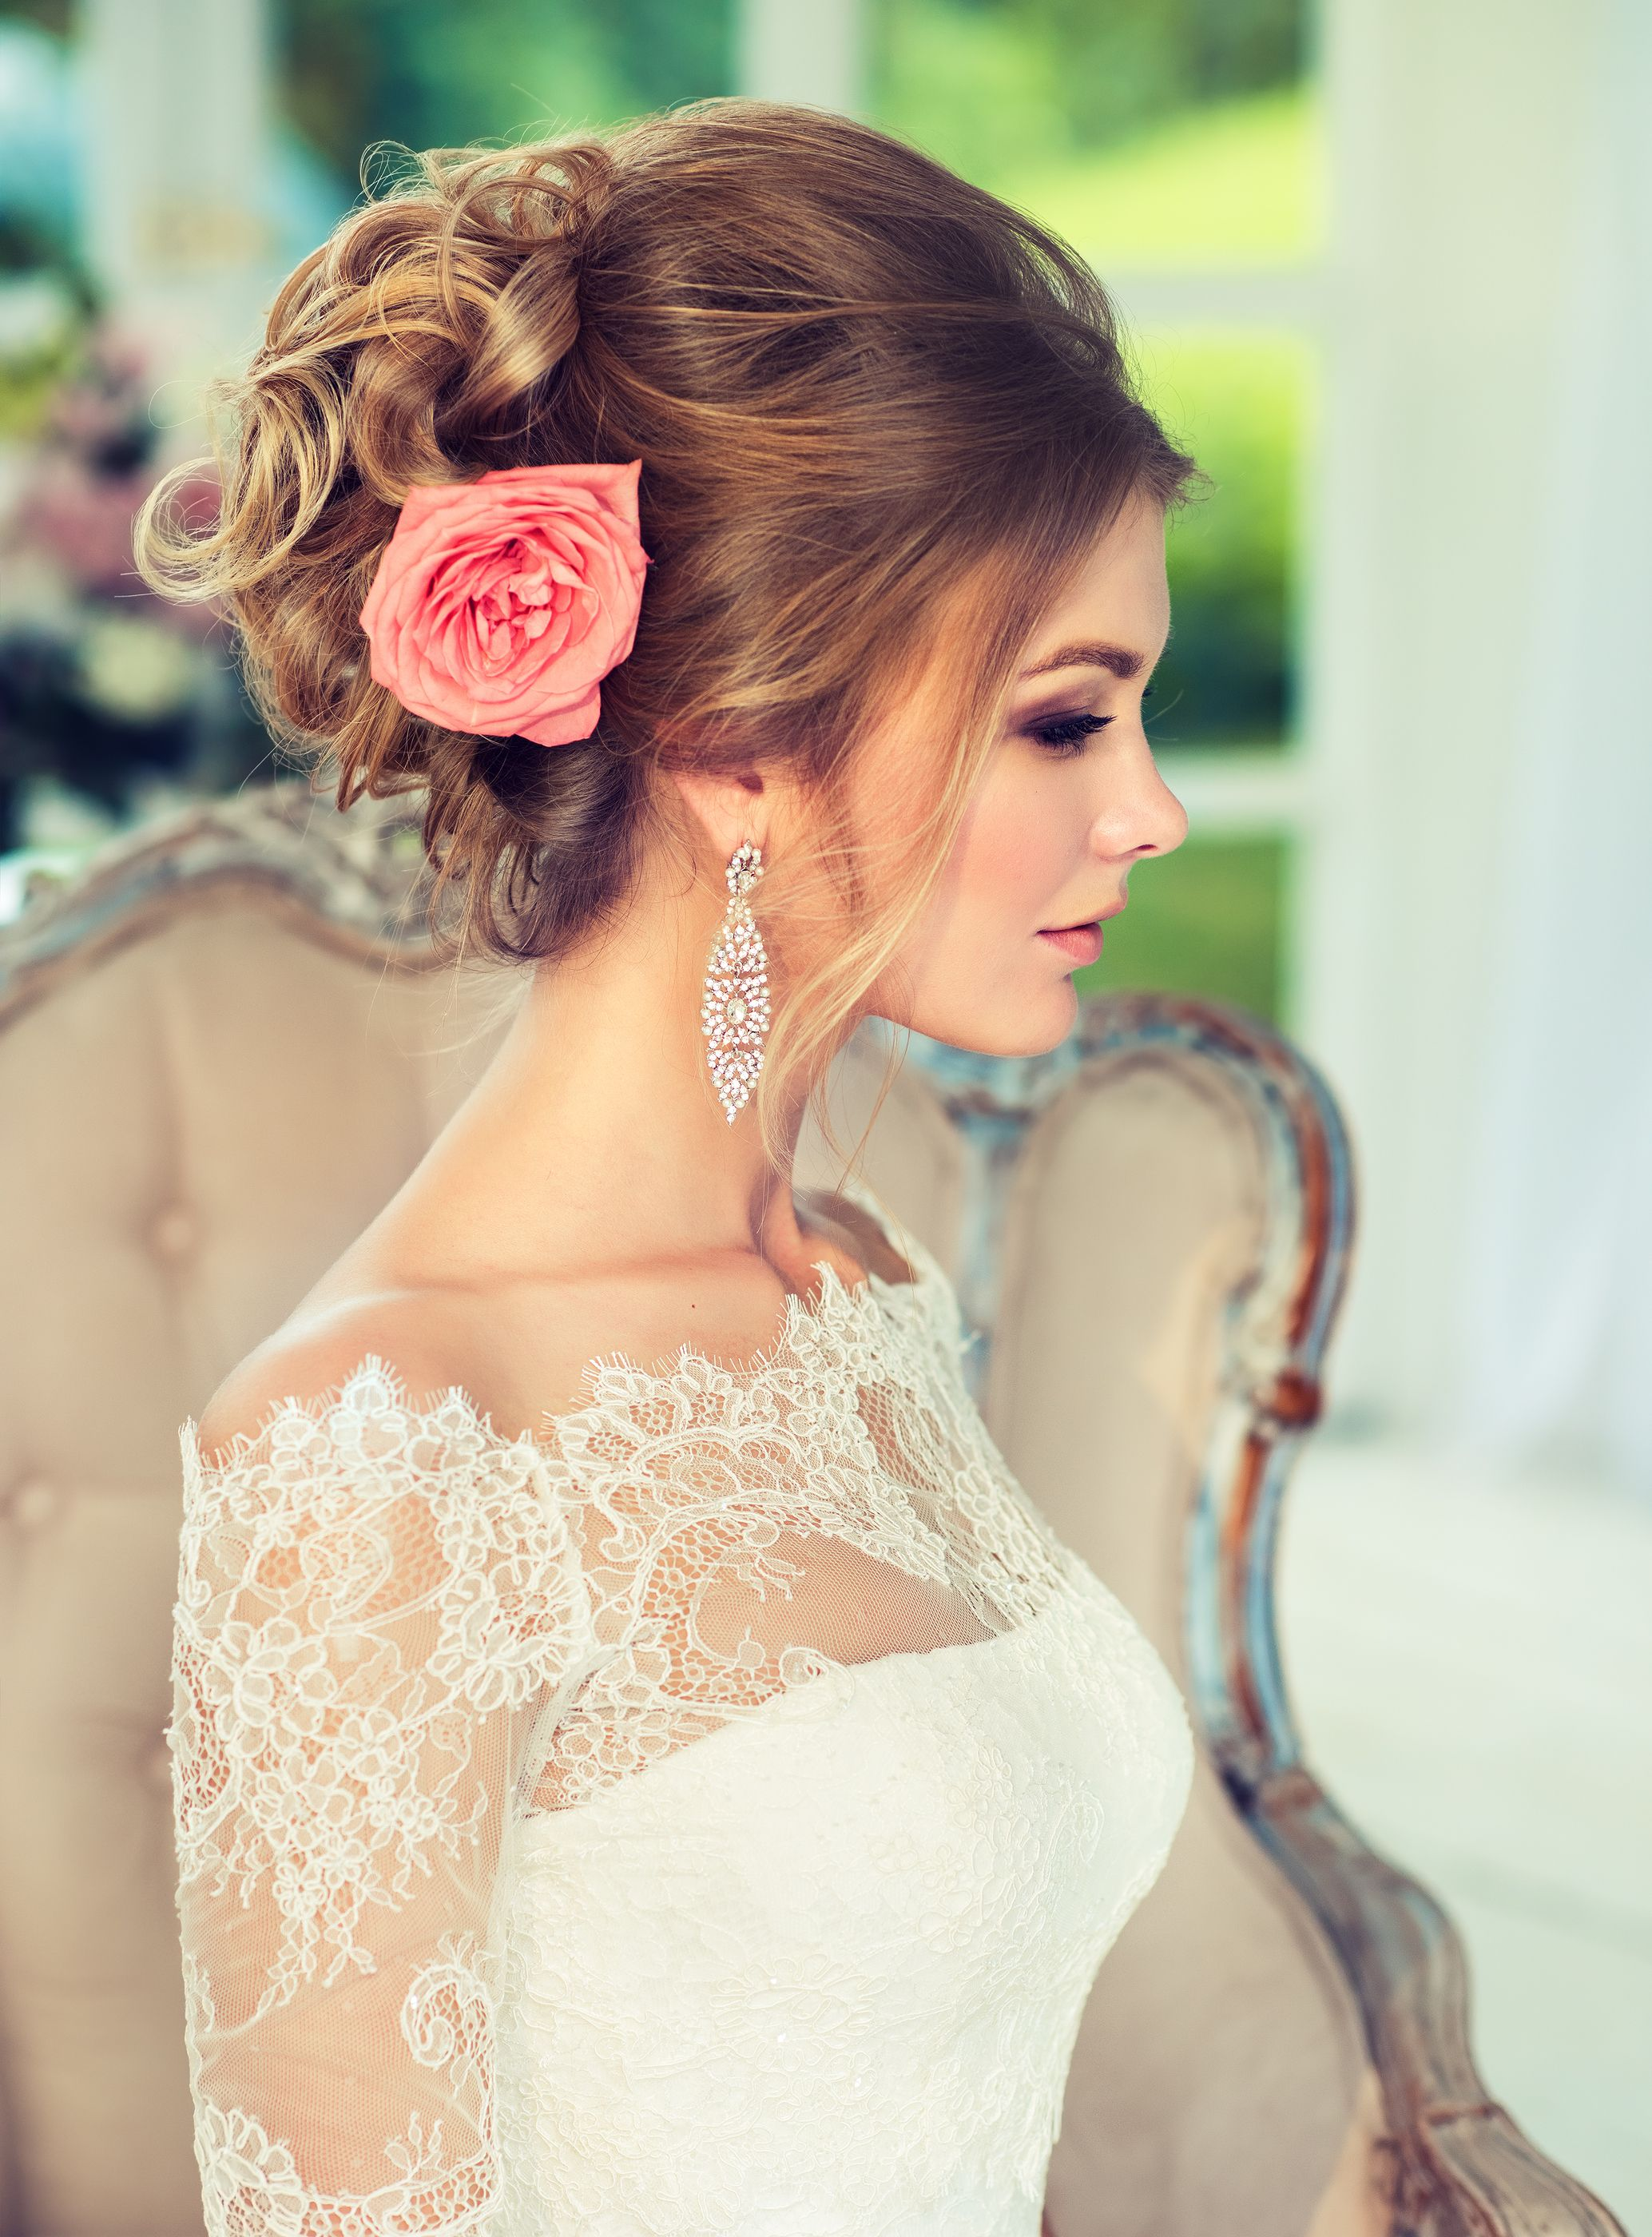 elegant wedding hairstyle for classy brides. perfect for a